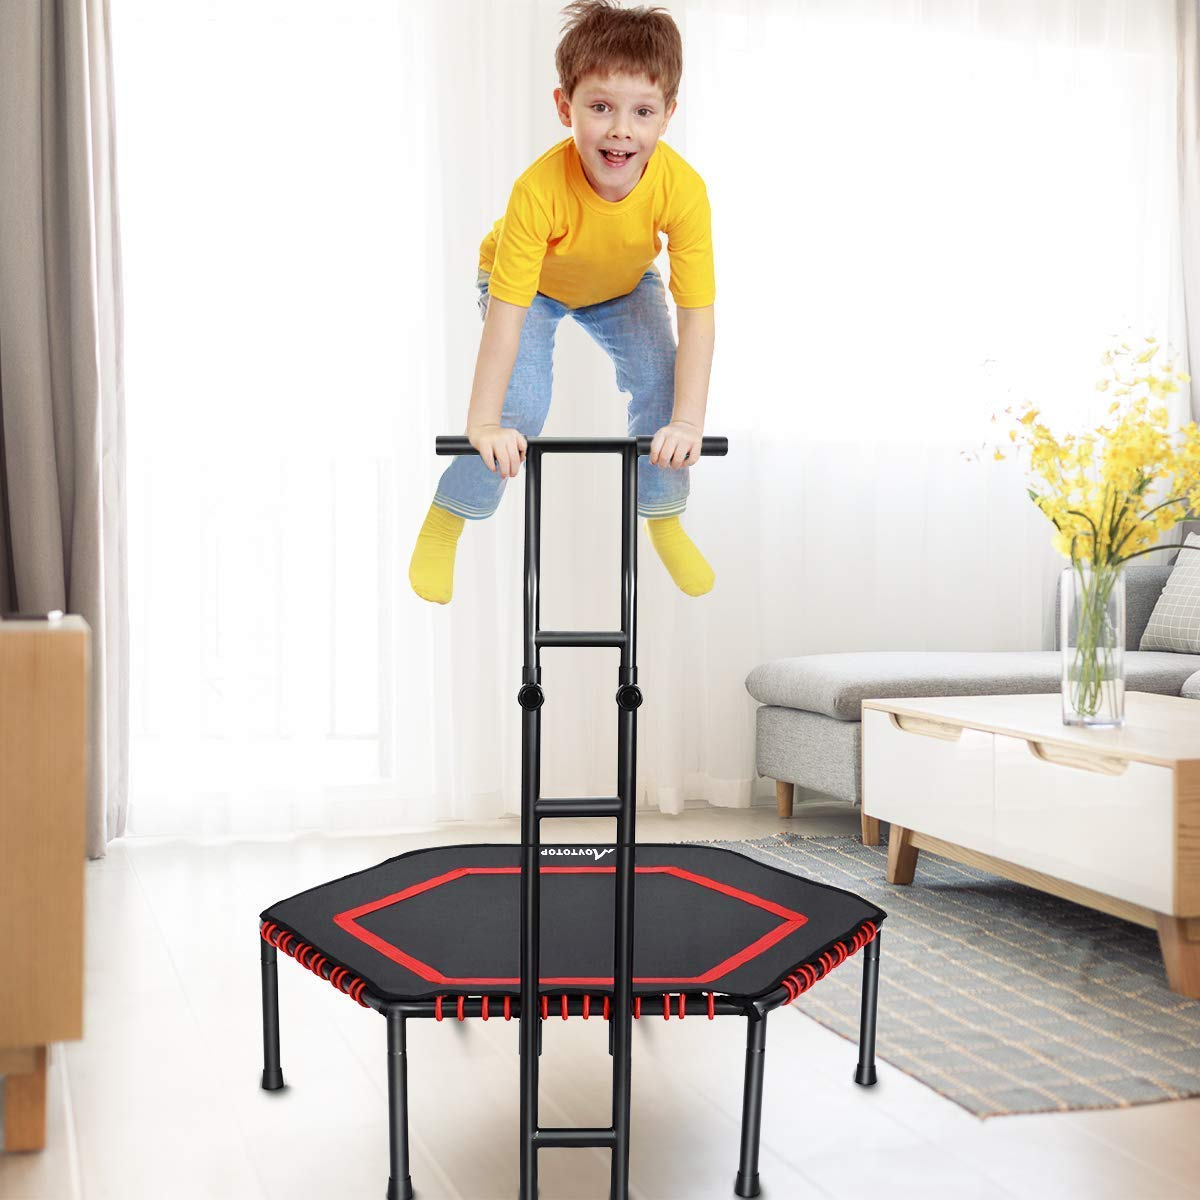 MOVTOTOP Indoor Trampoline with Adjustable Handrail Bar, 48 Inch rebounder for Kids Adults, Folding Jump Workout Trainer with Overed Bungee Rope System for Cardio Exercise - Max Limit 264 lbs (Red)